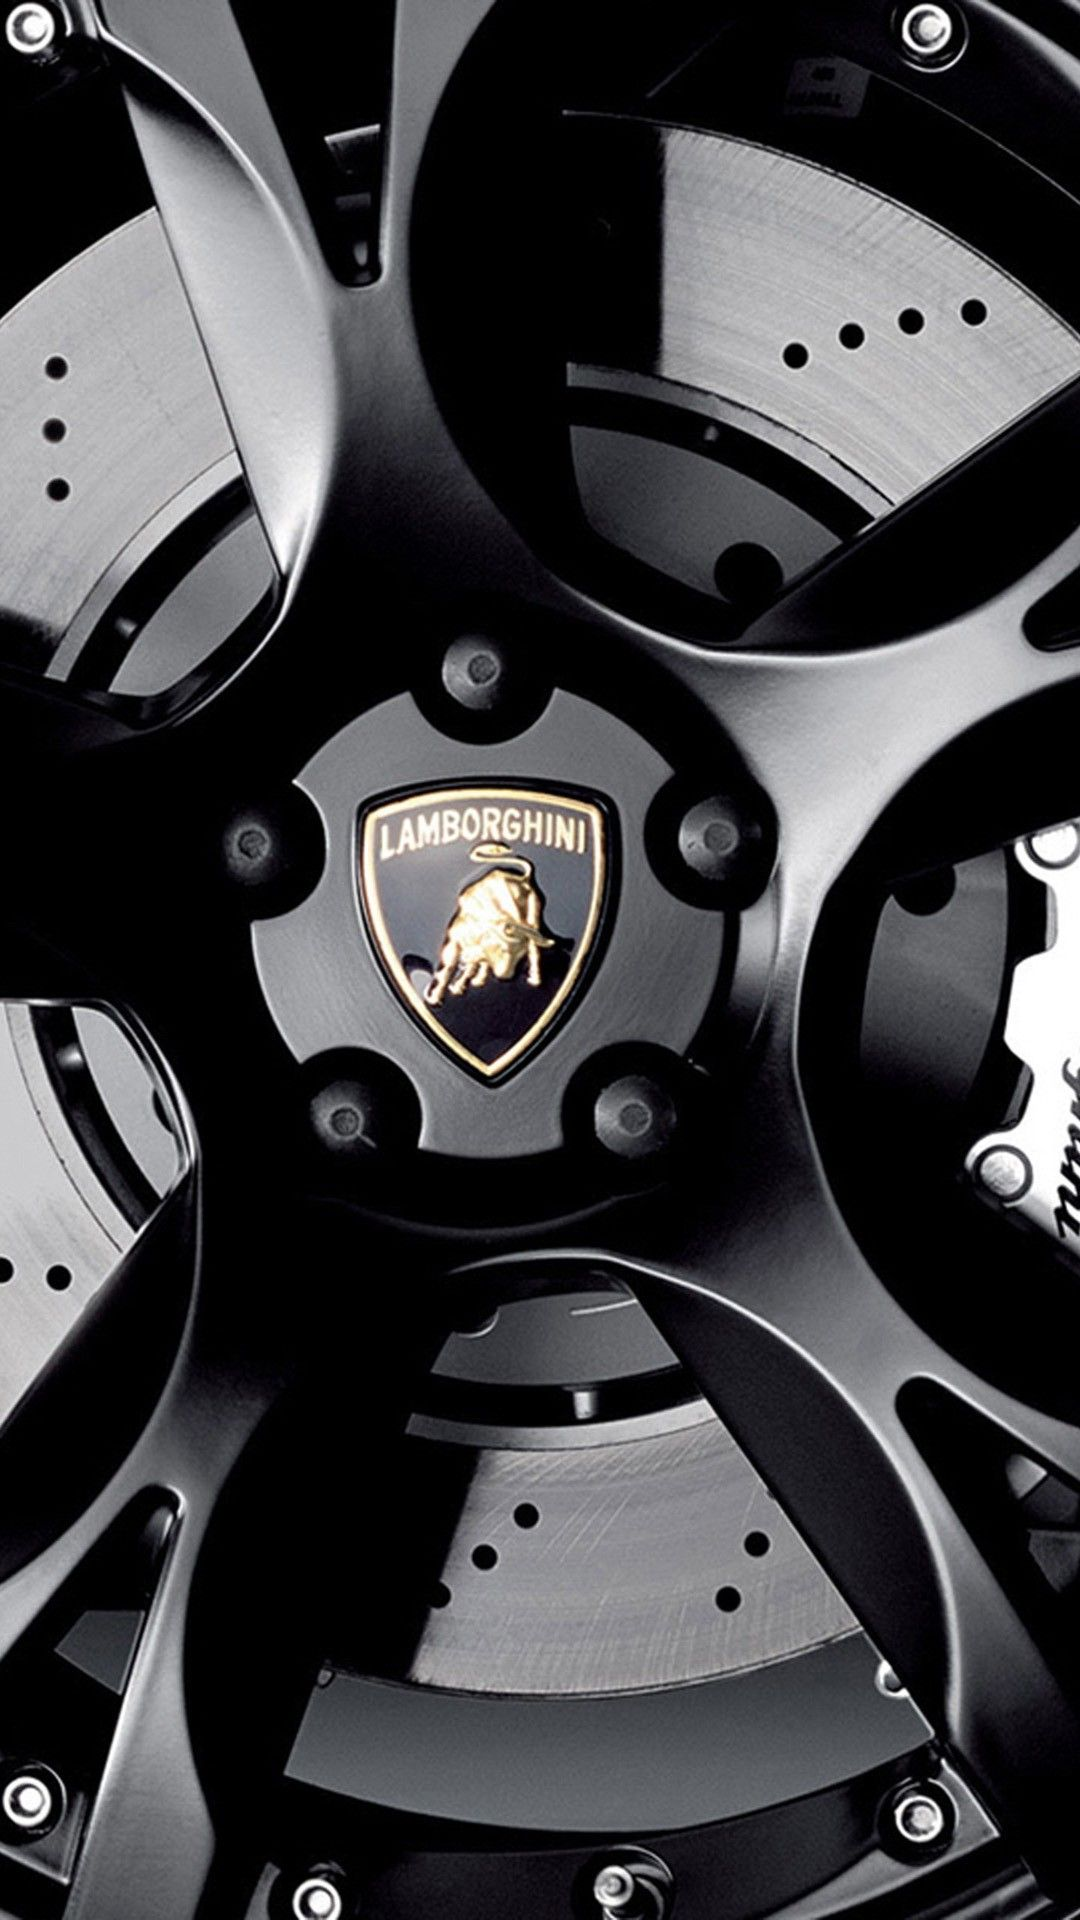 Lamborghini Car Rim Wallpaper Car Wallpapers Lamborghini Auto